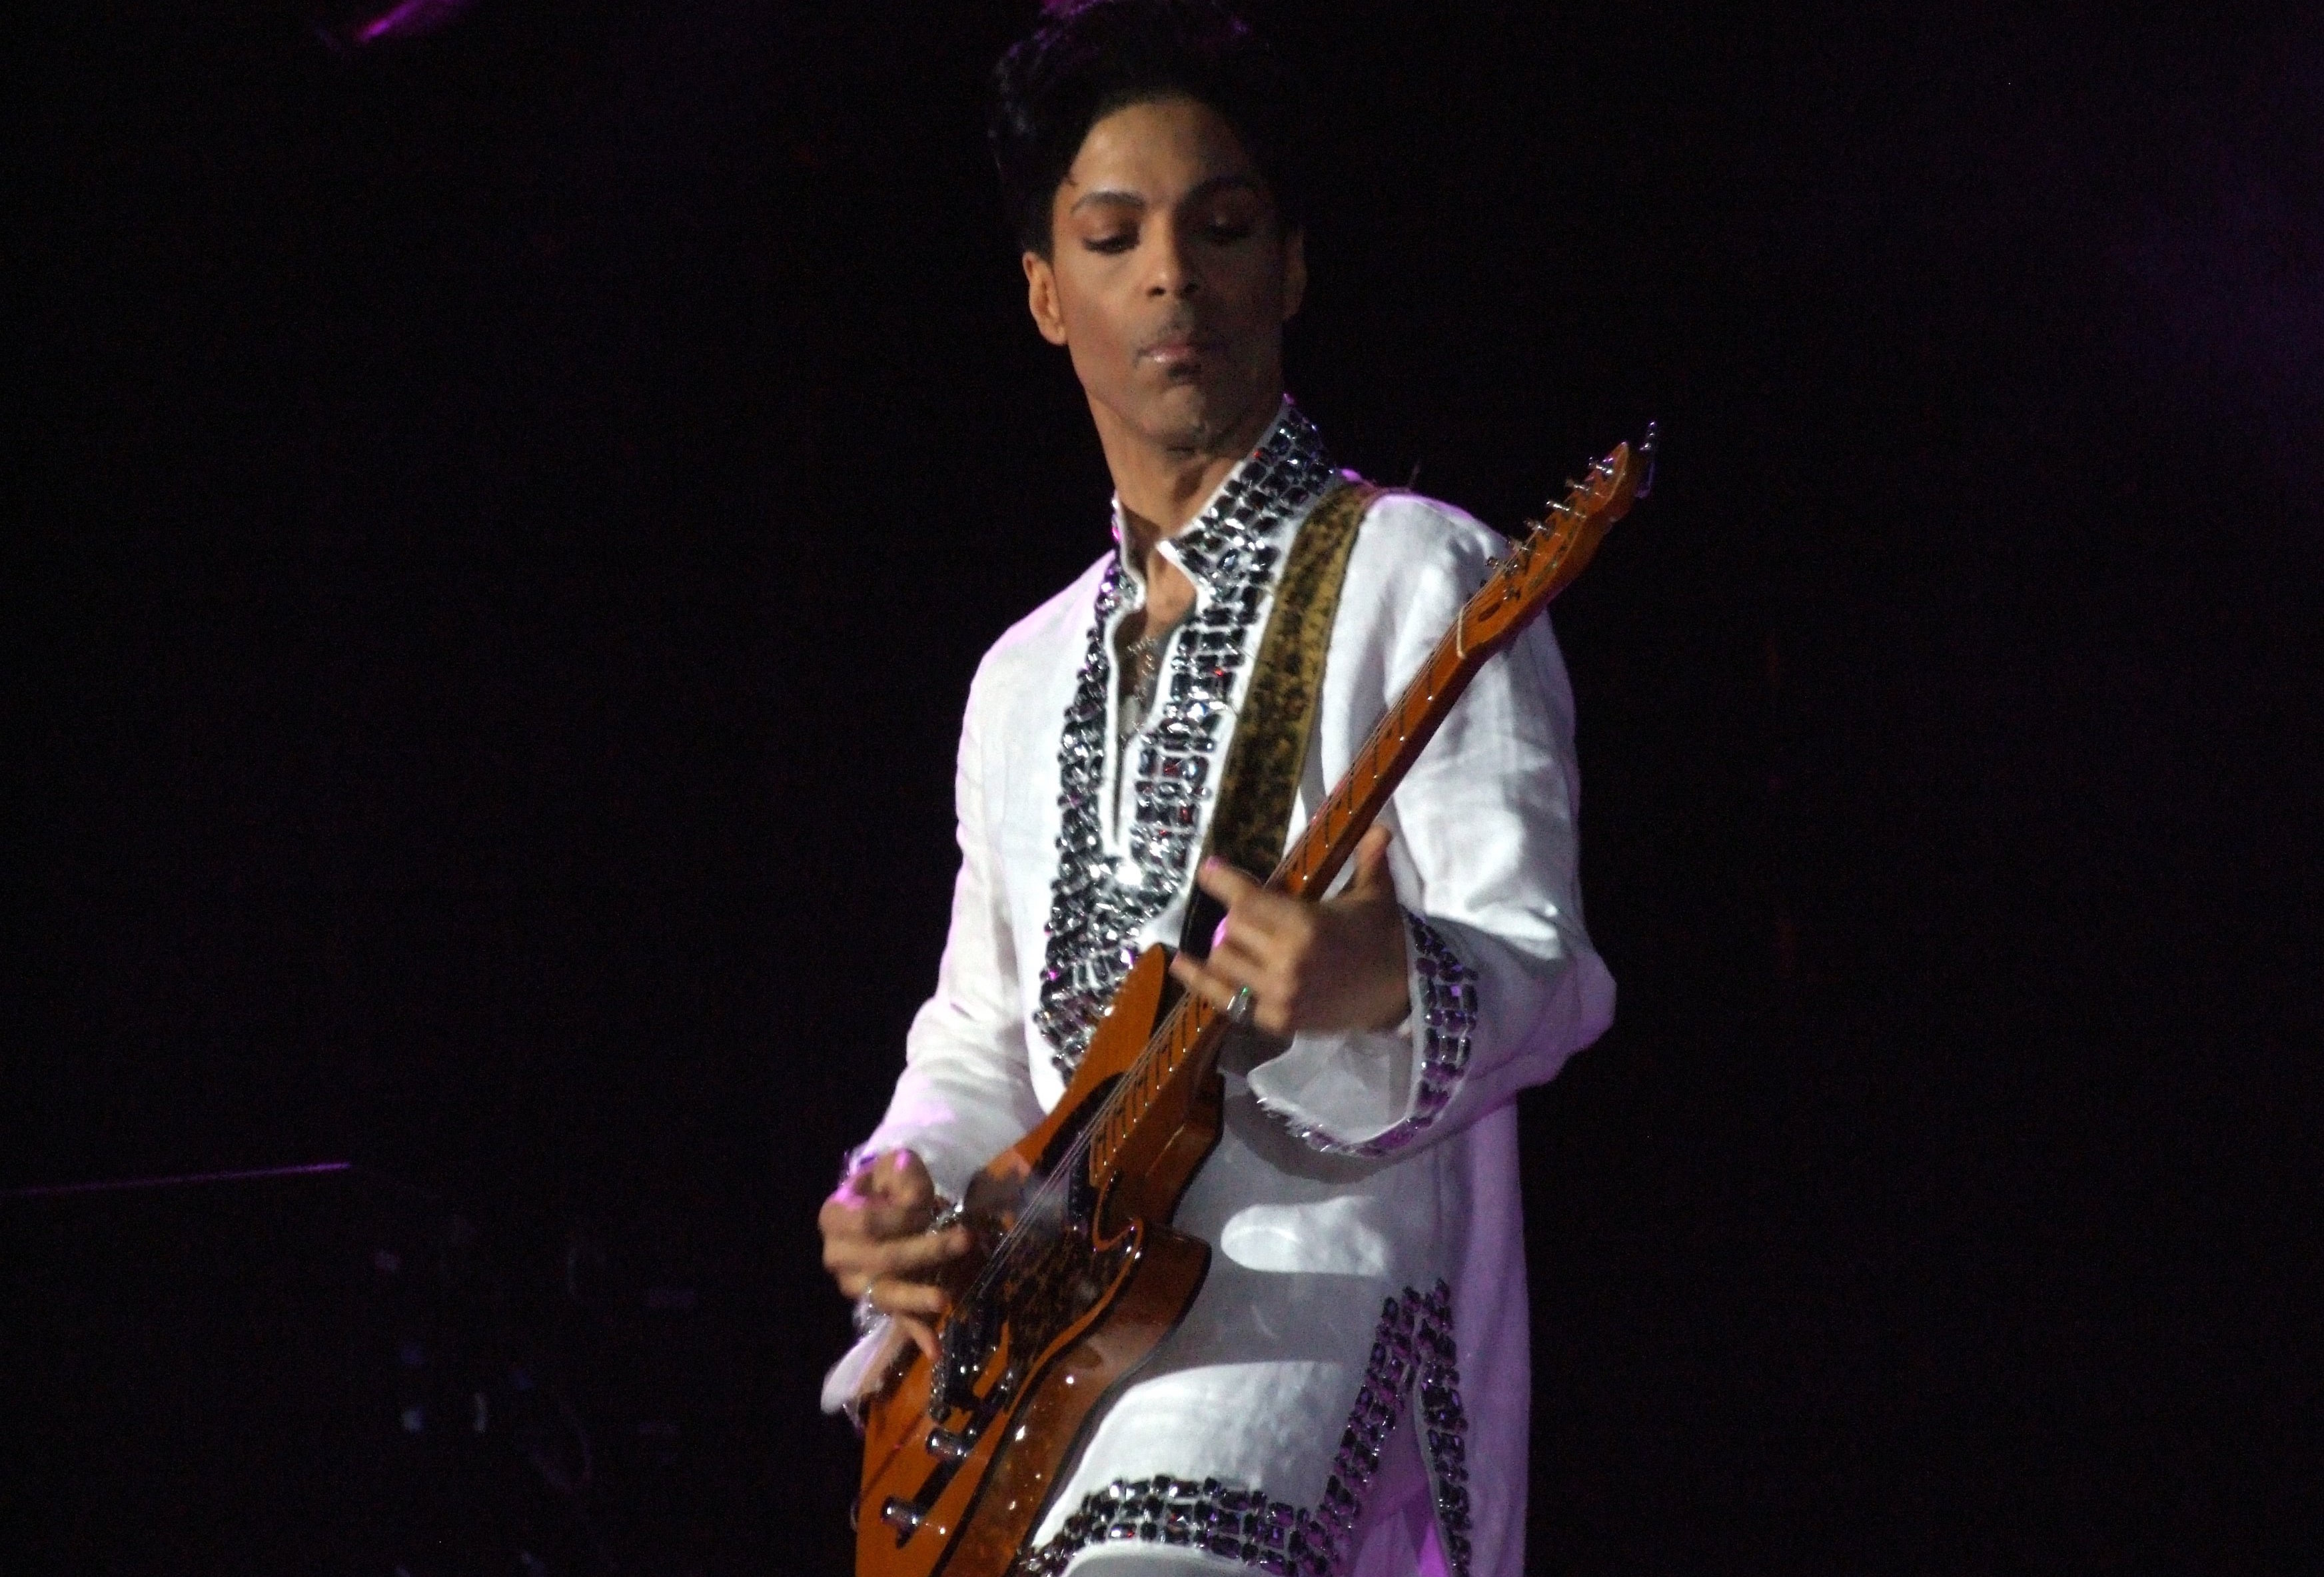 Percocet found in Prince's system